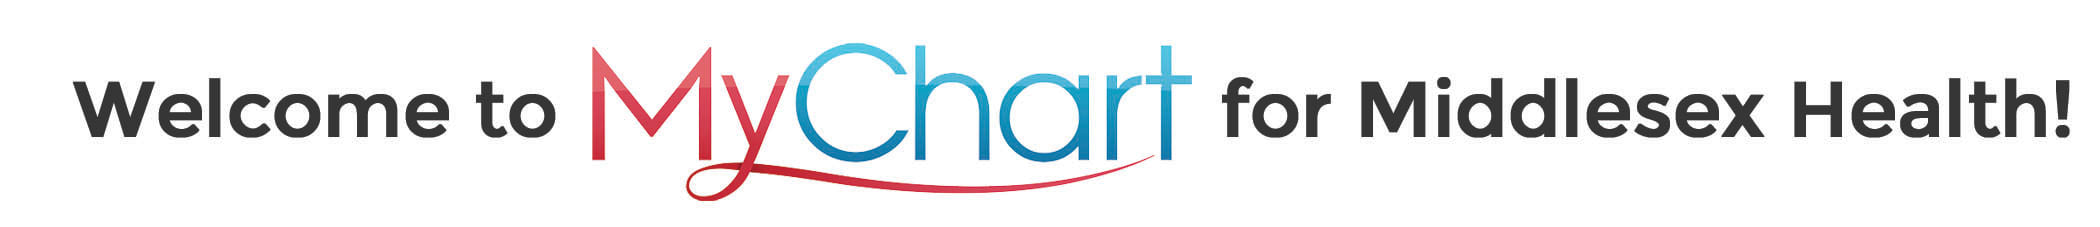 Welcome to MyChart logo.